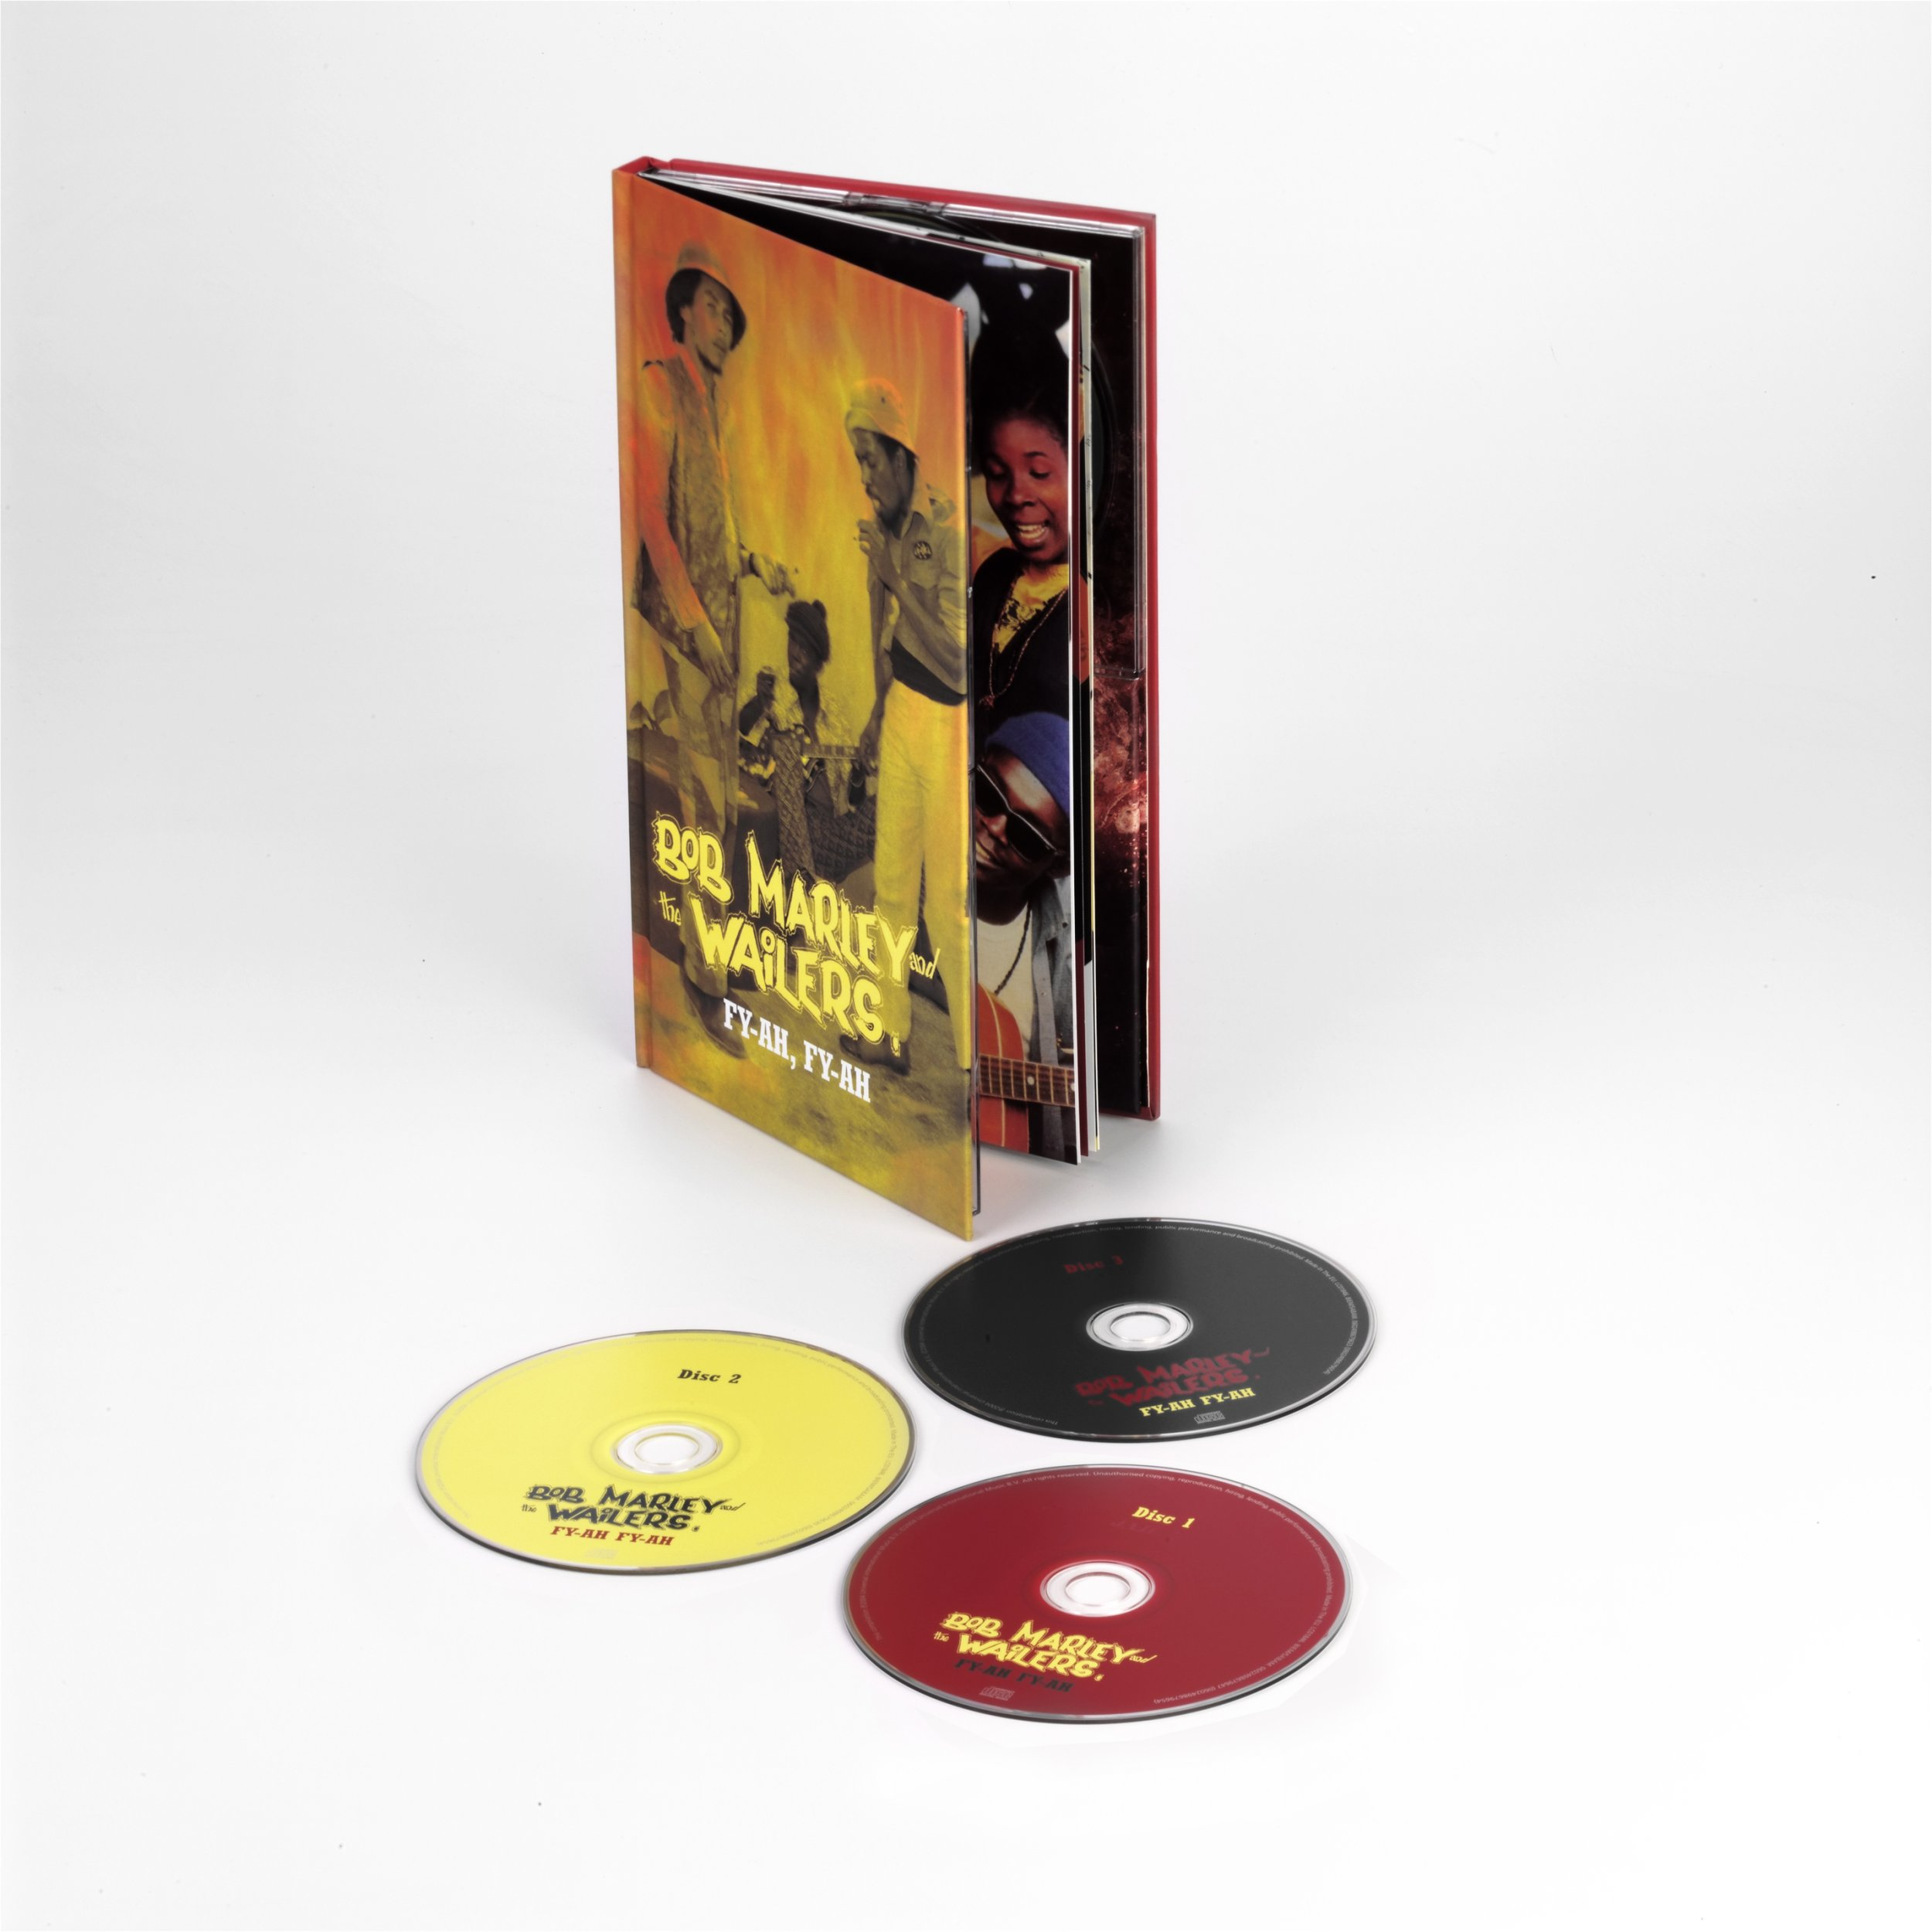 Fy-Ah Fy-Ah: Bob Marley and the Wailers by Hip-O Records